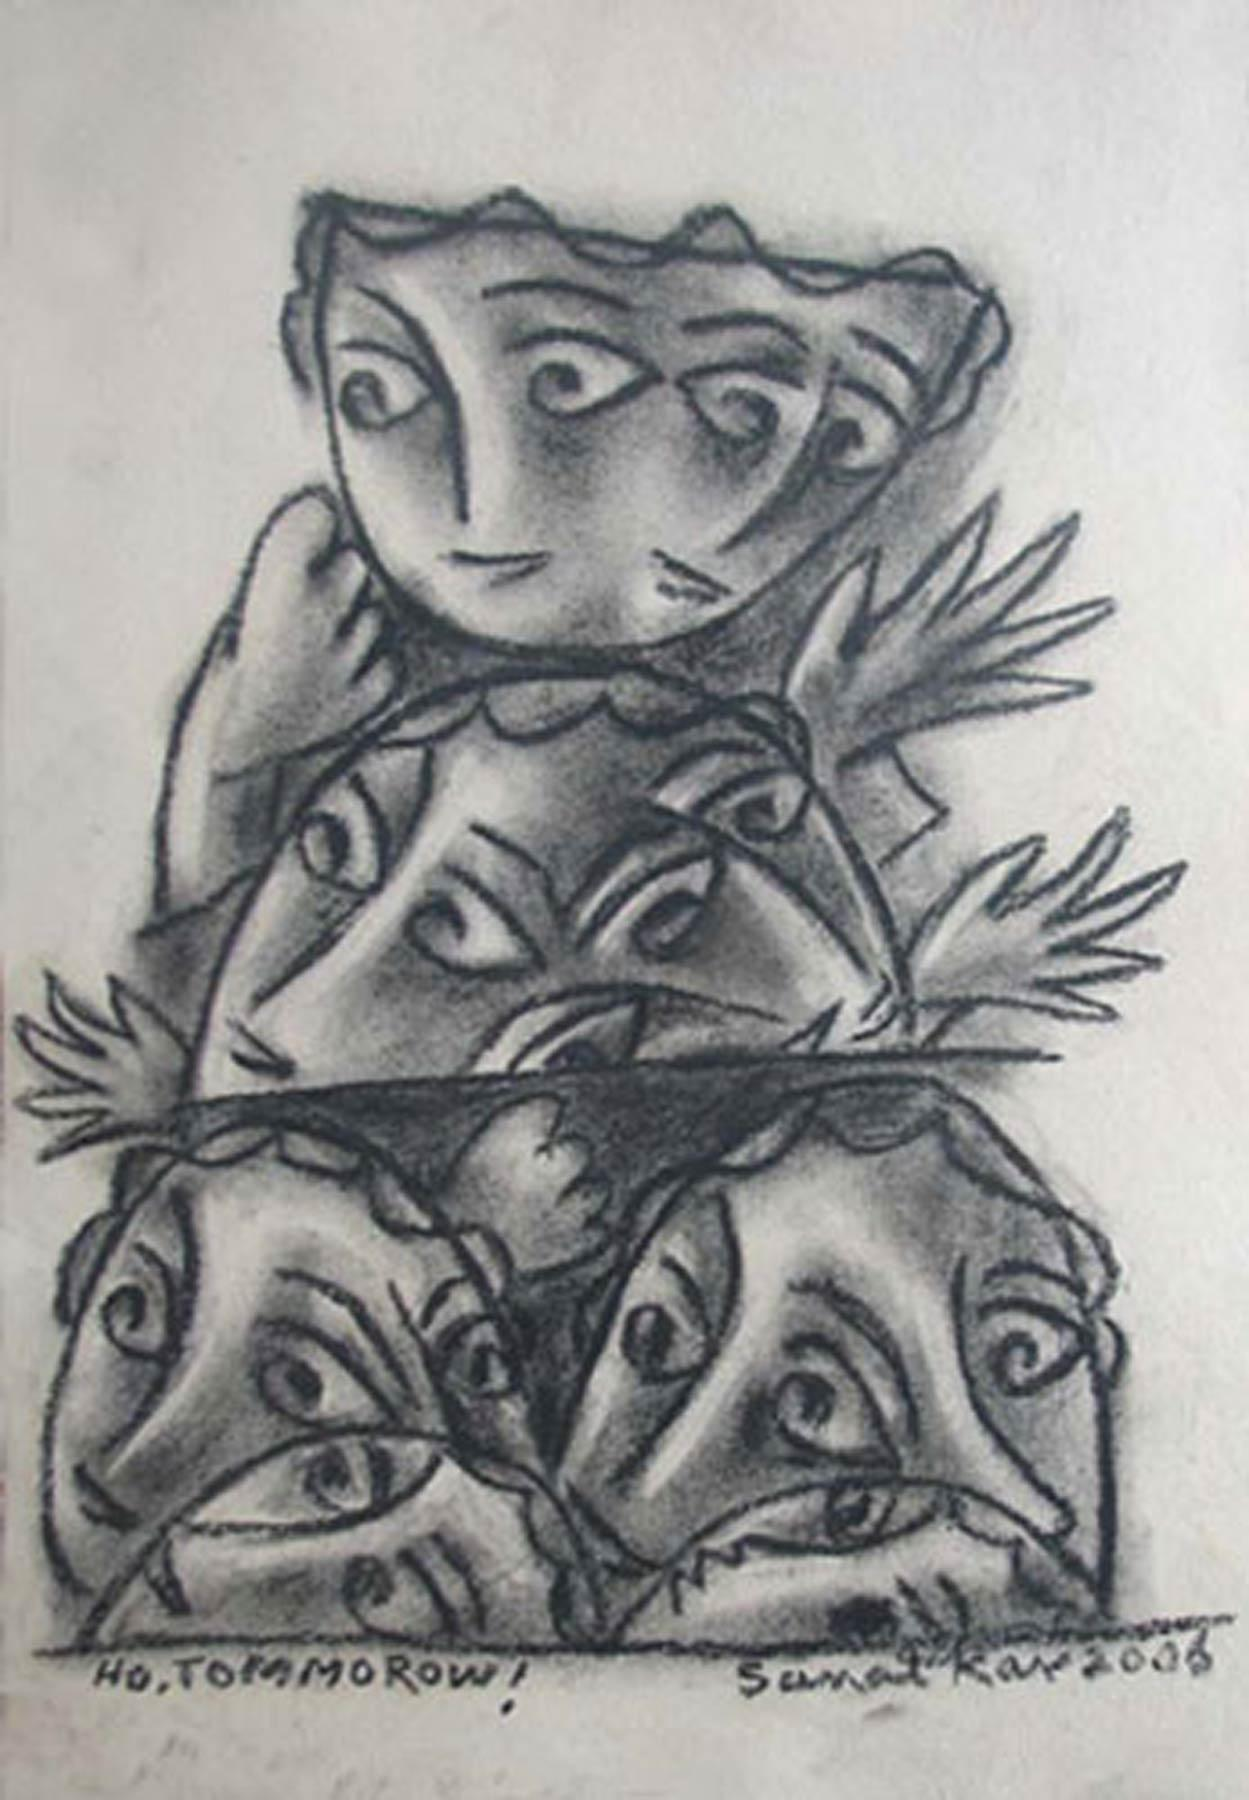 """HO. TOMMOROW, Drawing, Mixed Media & Charcoal on paper, Black & White """"In Stock"""""""